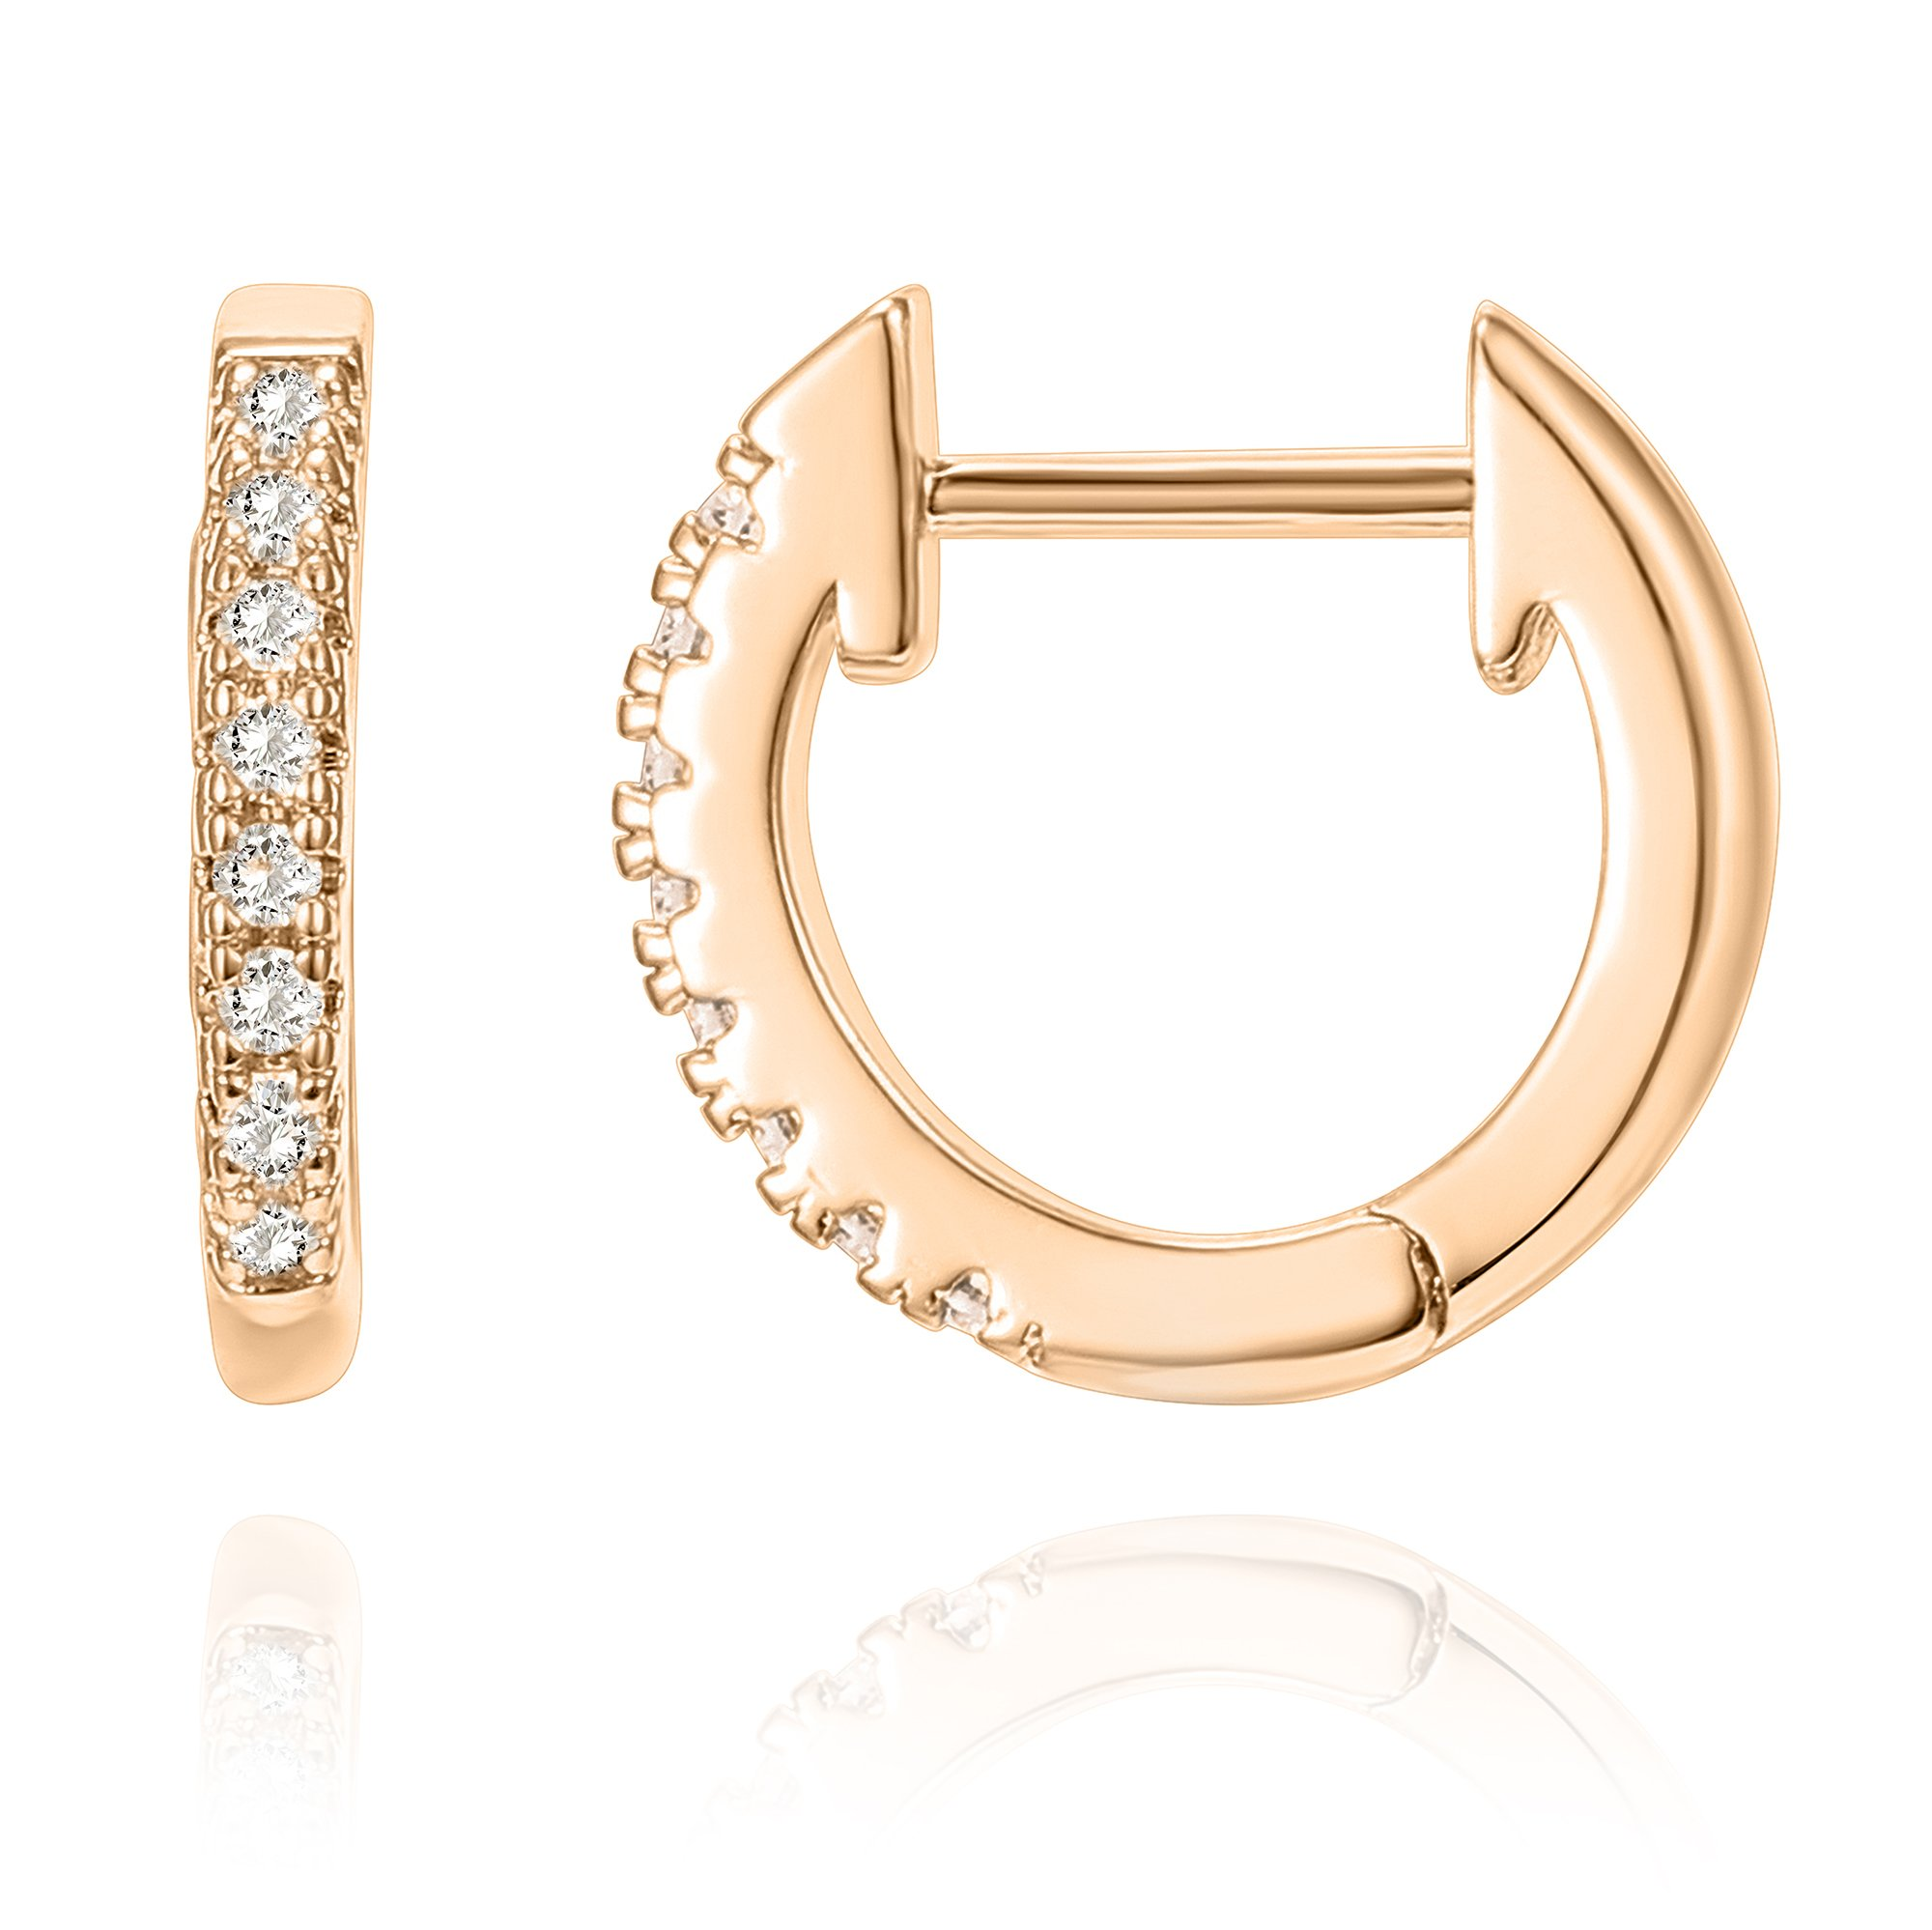 PAVOI 14K Rose Gold Plated Sterling Silver Post Cubic Zirconia Cuff Earring Huggie Stud